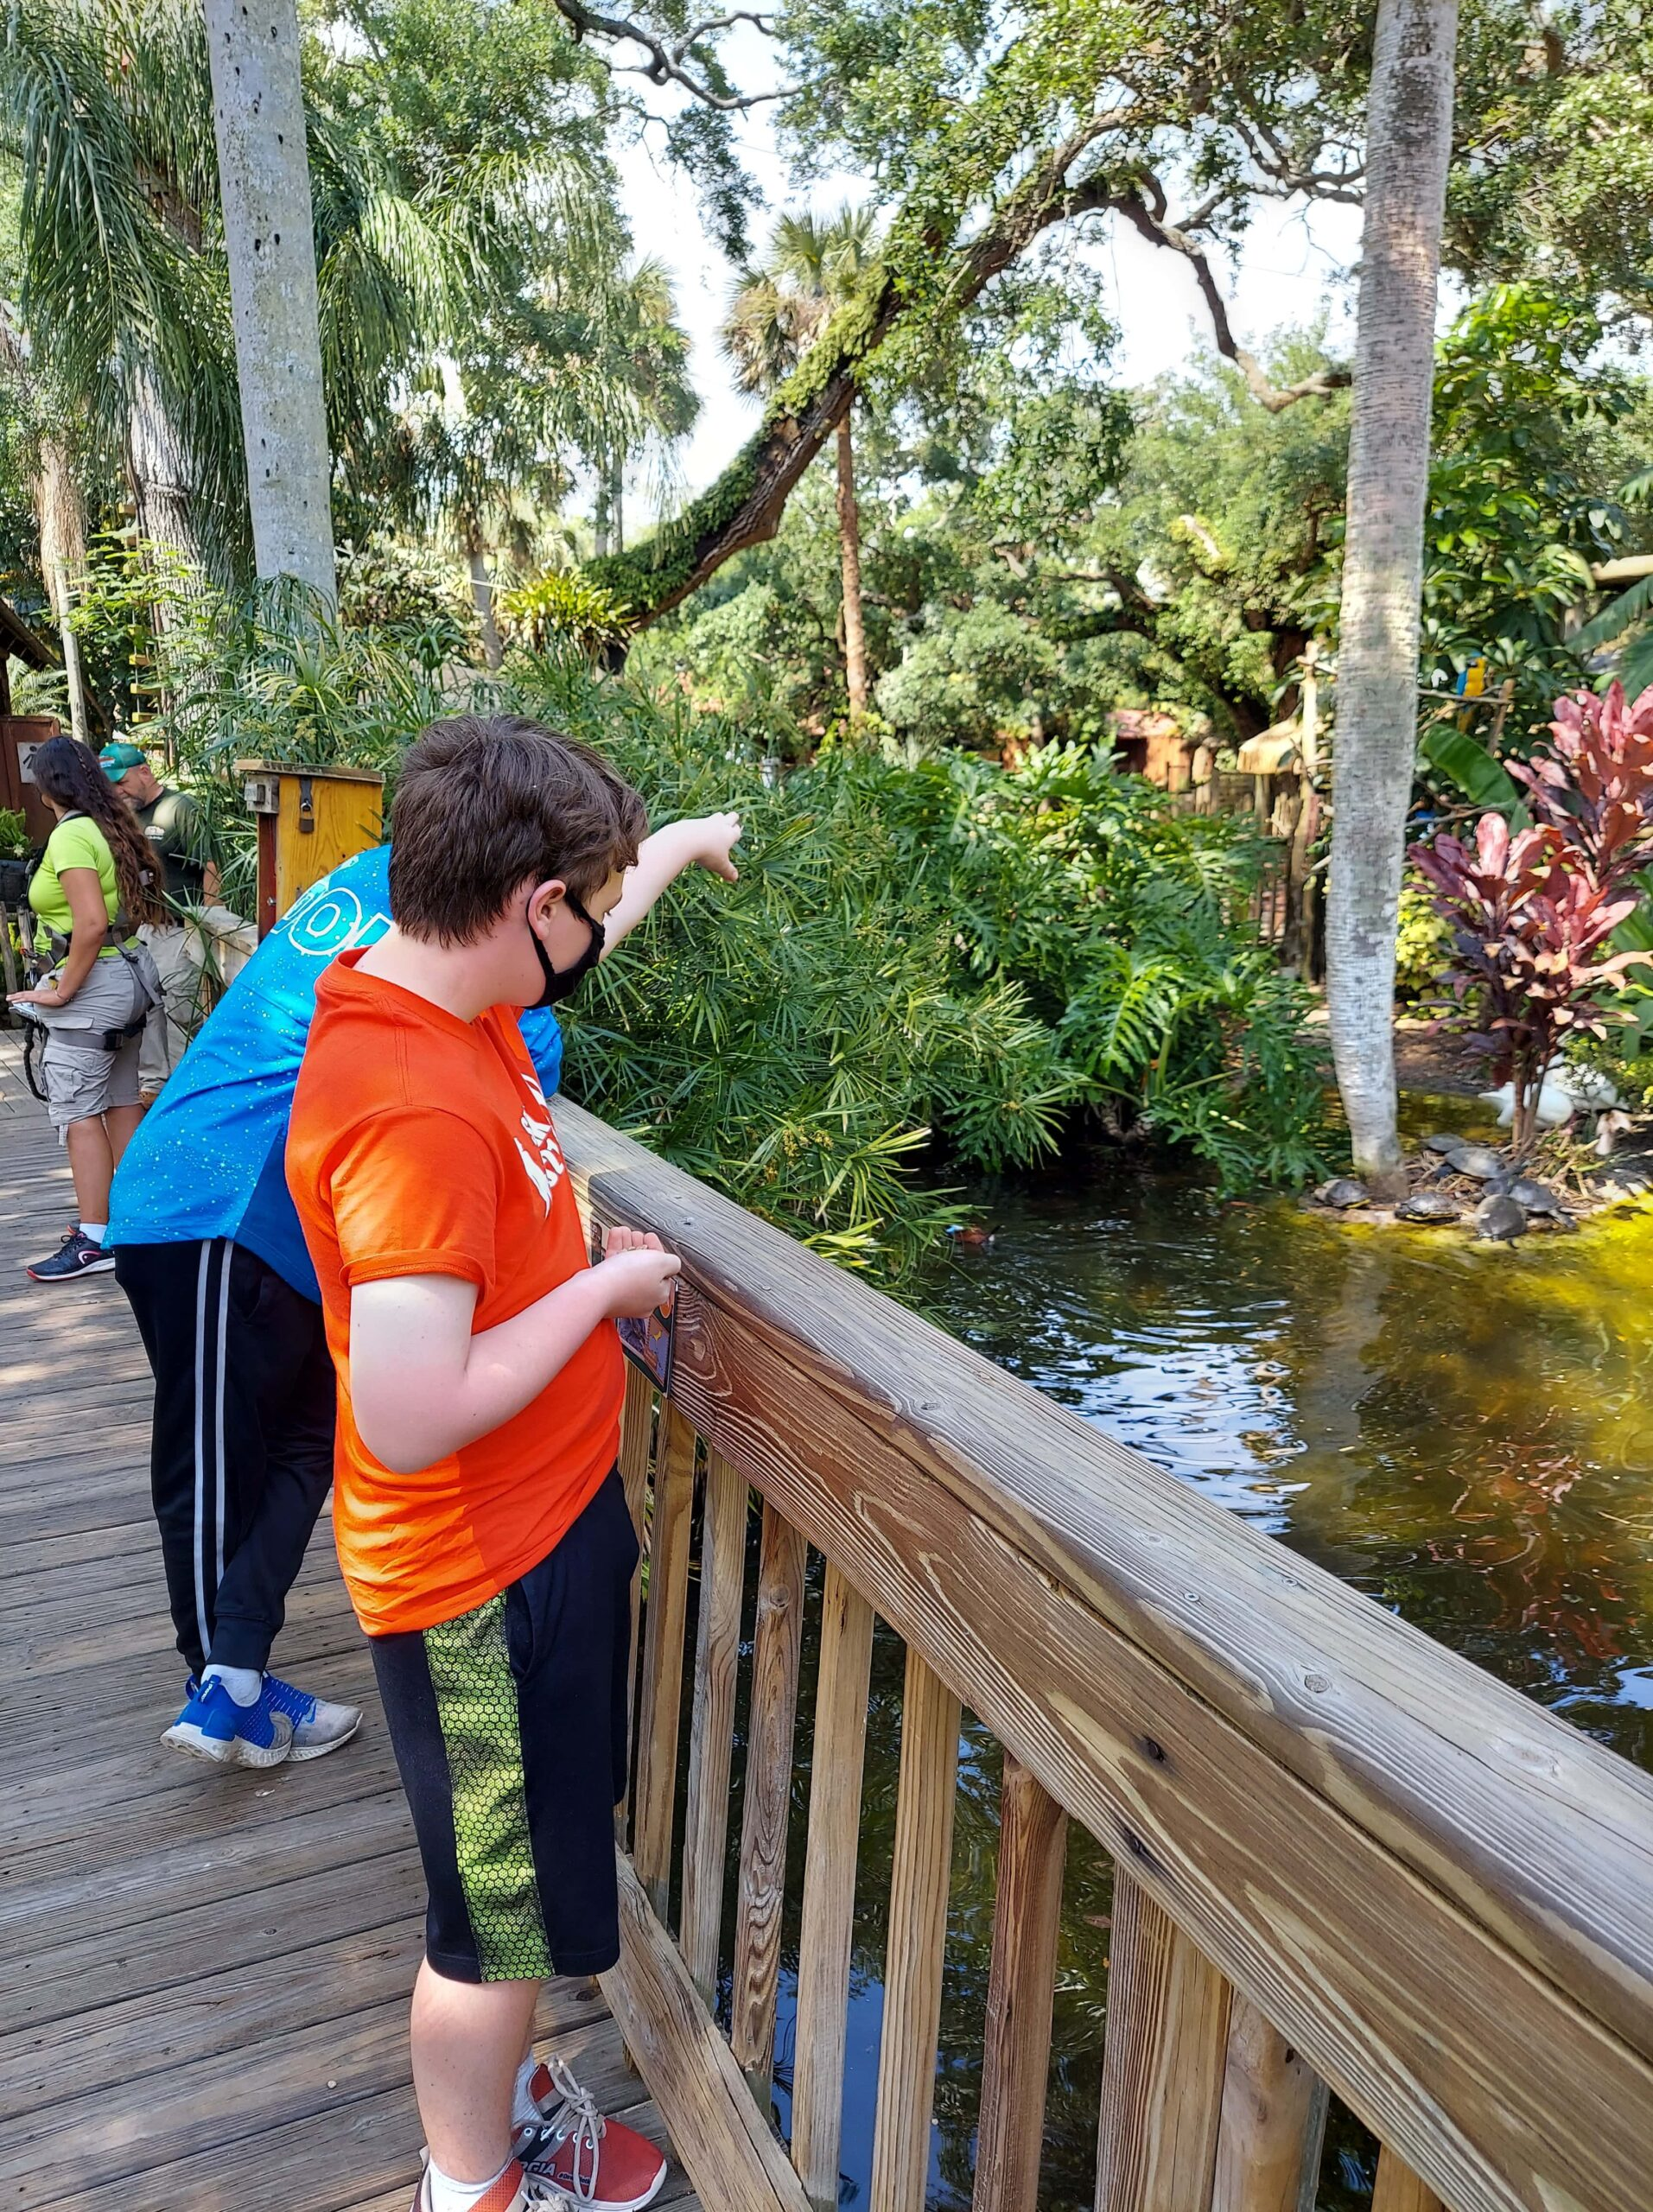 Kids can feed the gators at the St. Augustine Alligator Farm, one of the best things to do in St. Augustine